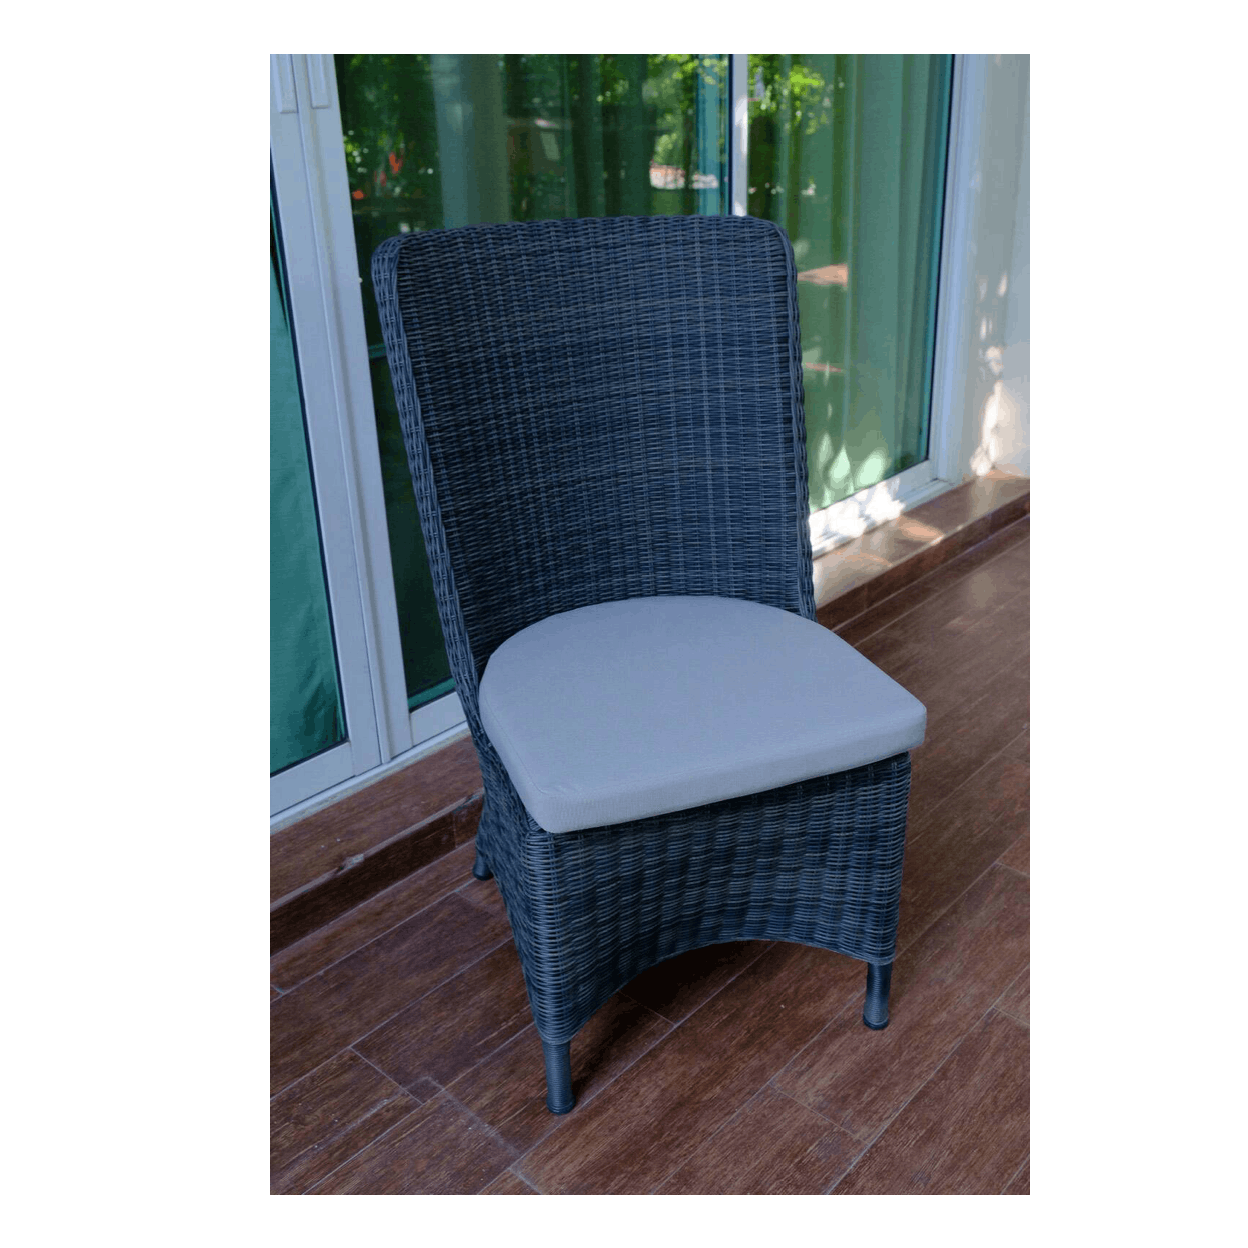 London side chair outdoor for Outdoor furniture london